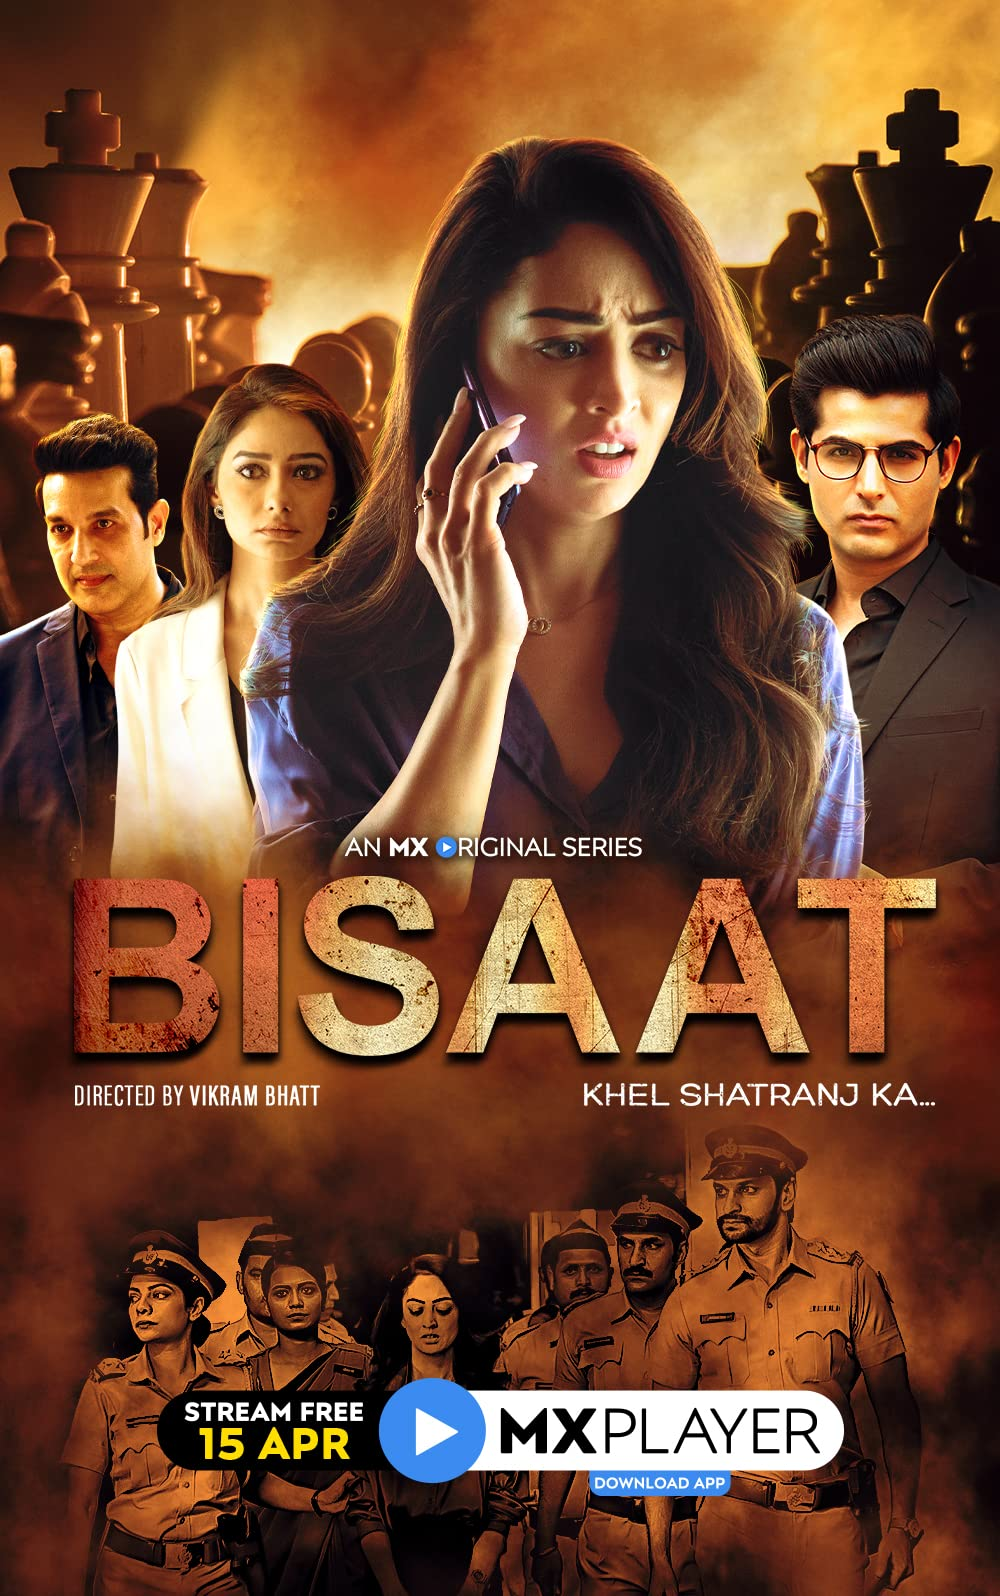 Bisaat: Khel Shatranj Ka 2021 S01 Hindi MX Original Complete Web Series 1080p HDRip 3.3GB Download